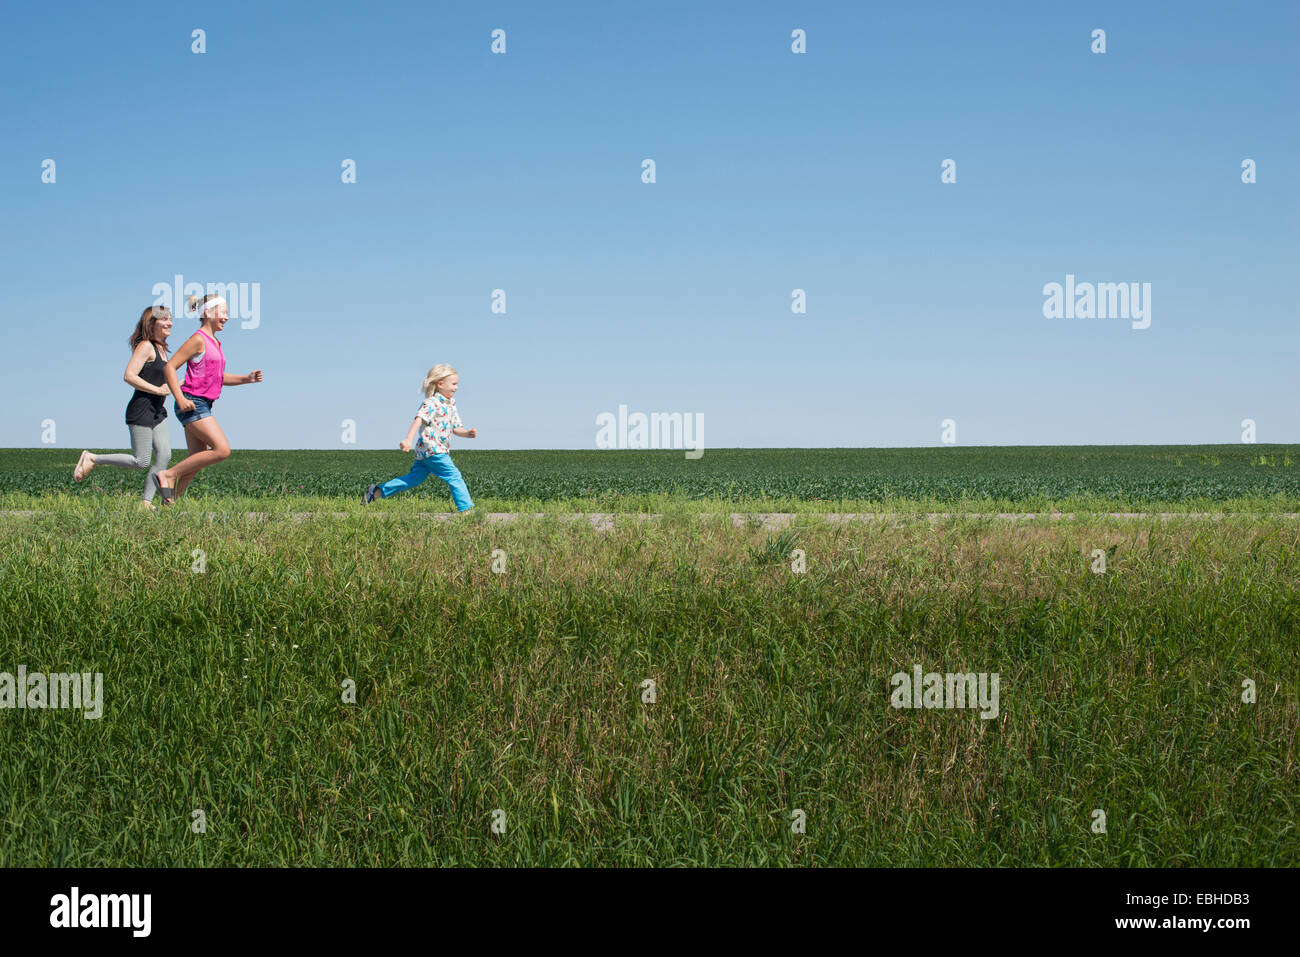 Three people running through field - Stock Image